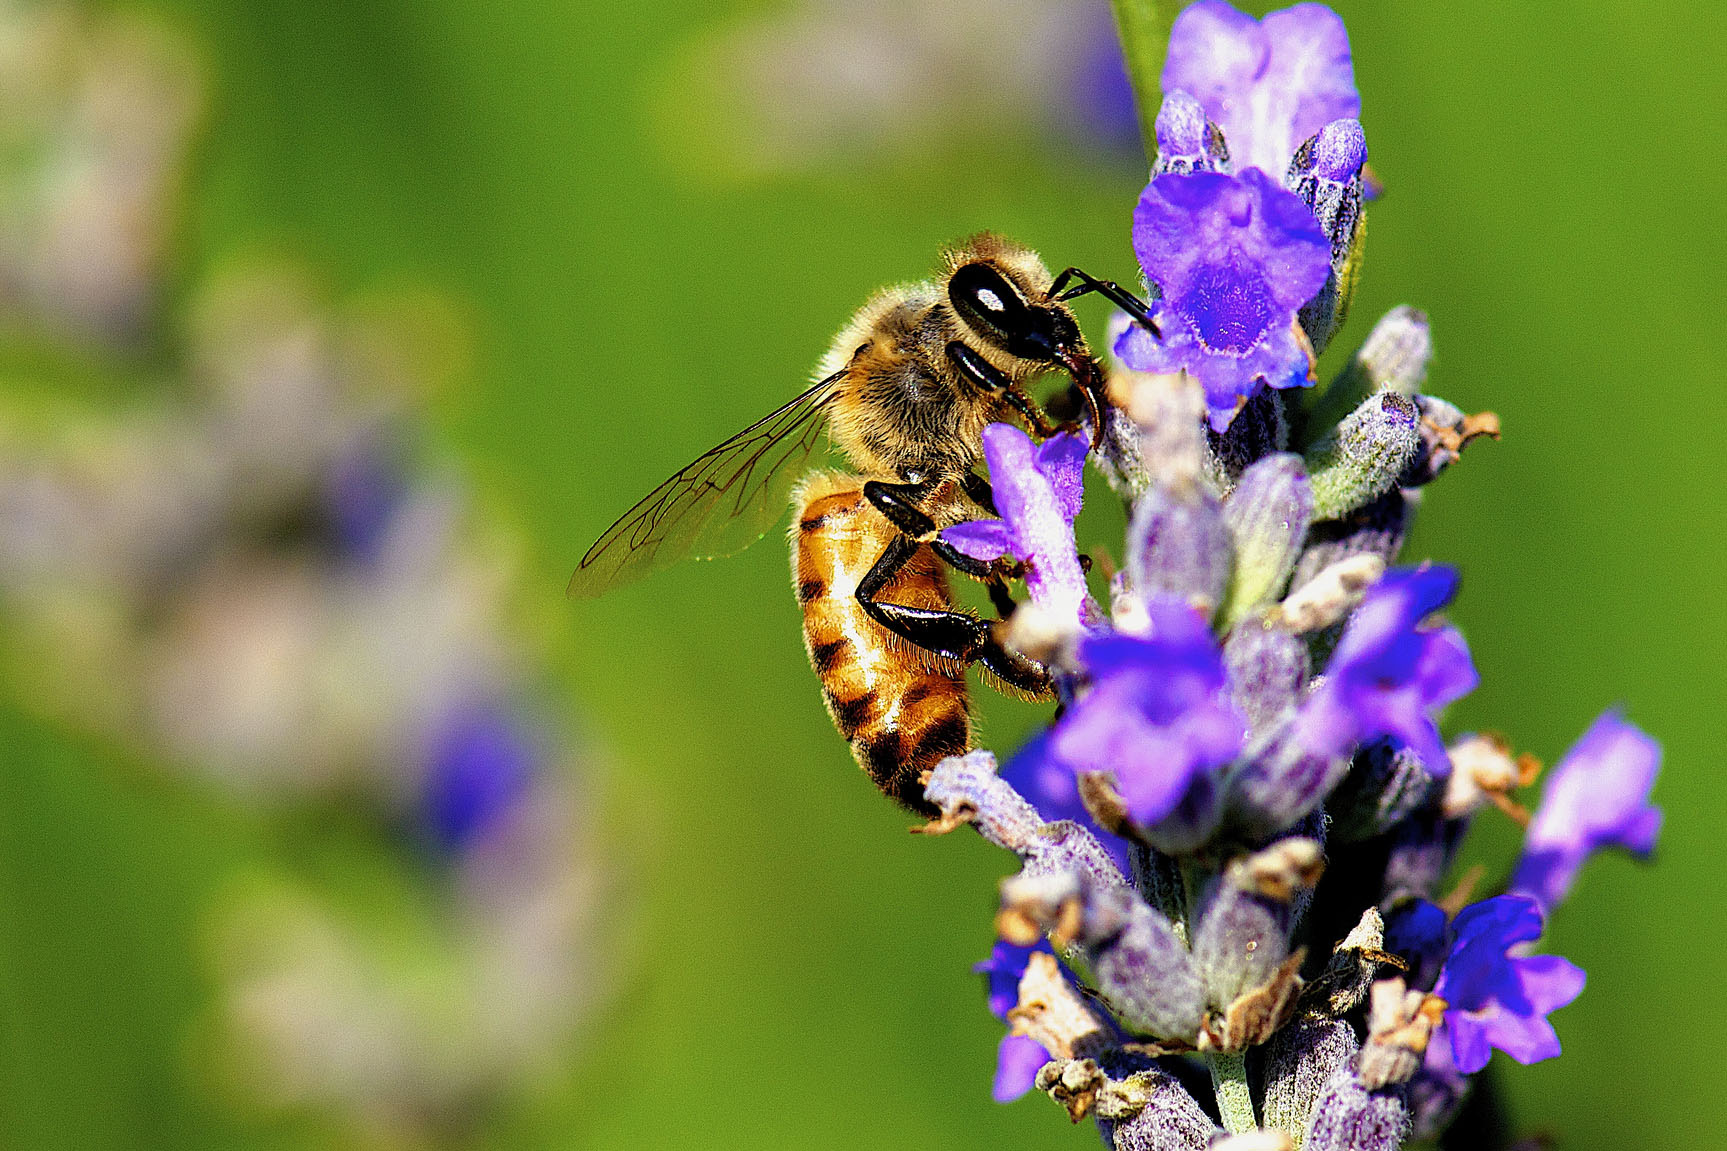 Bees can learn how to assess numerical value. (Danny Perez Photography, Flickr)